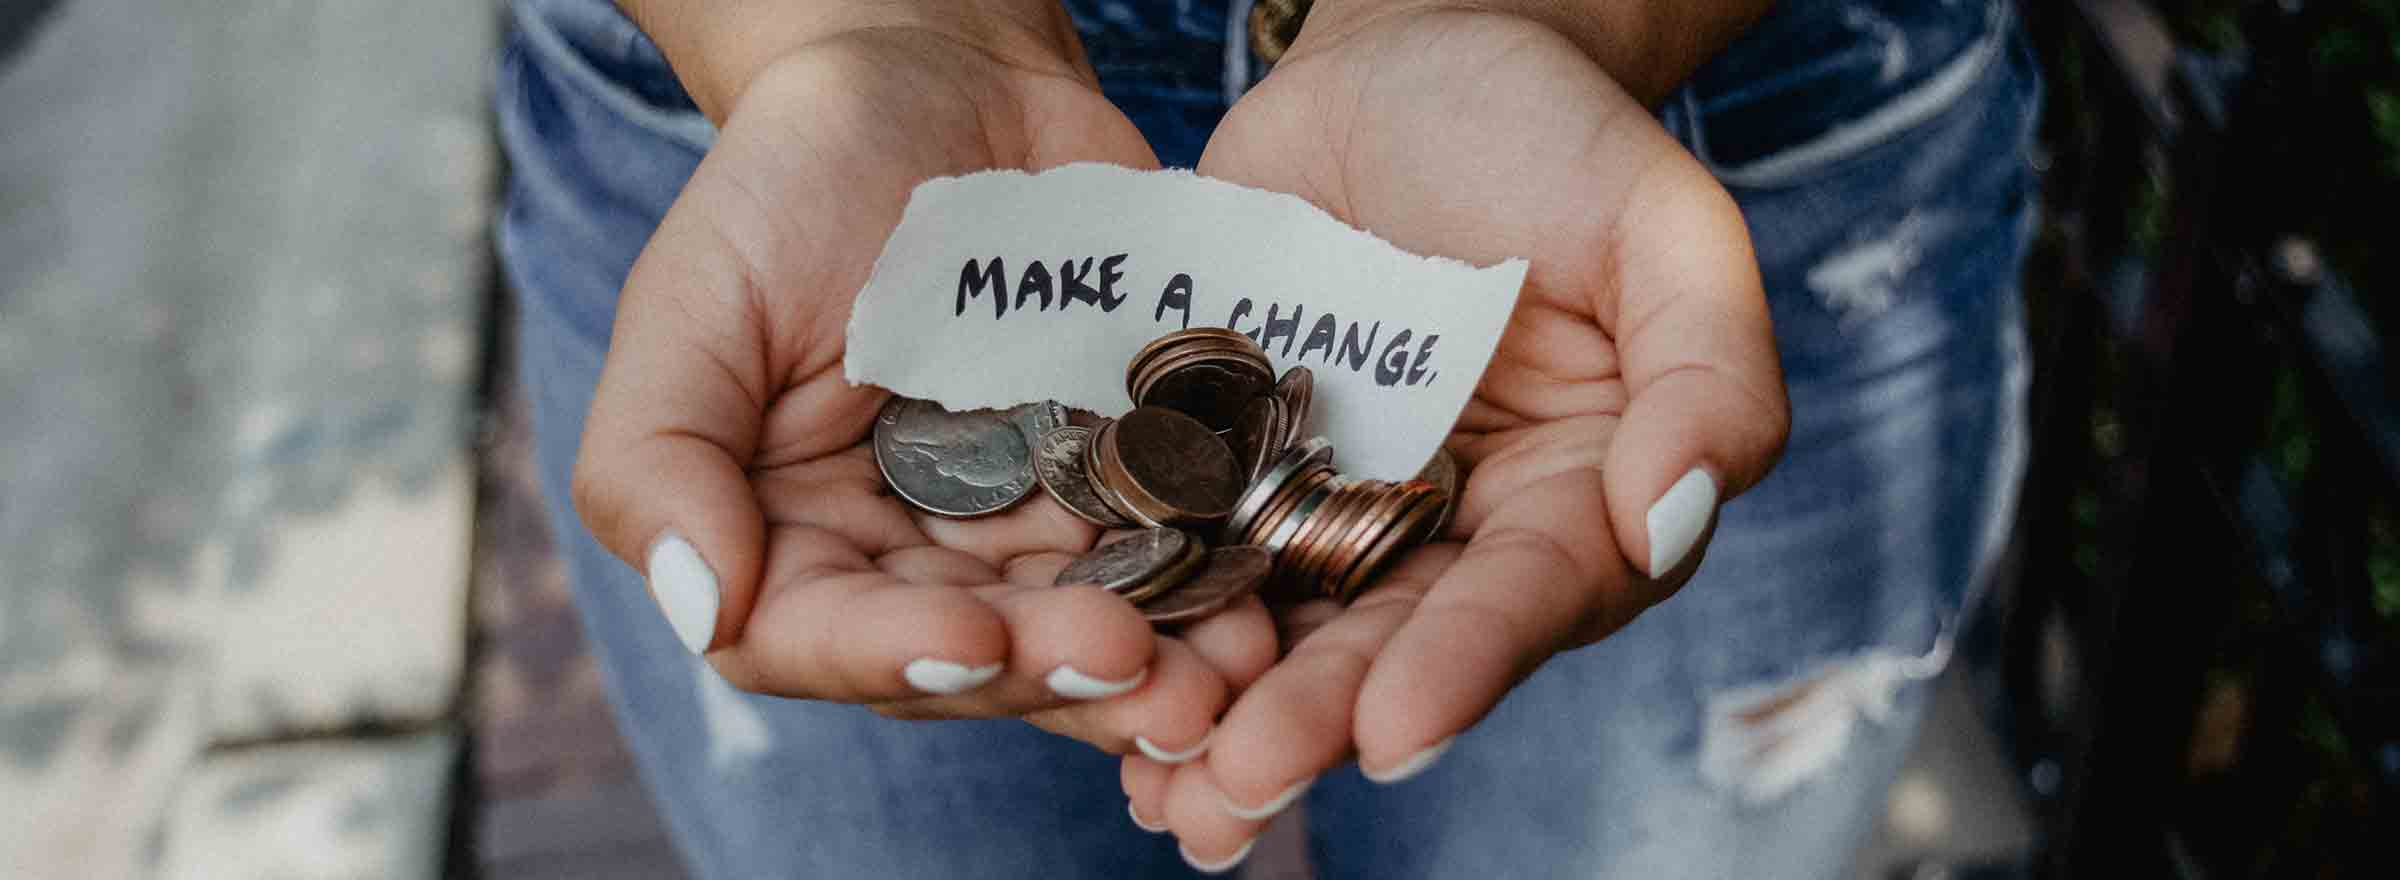 hands holding coins and a piece of paper that says make a change, representing the promise of monthly giving for nonprofit fundraising